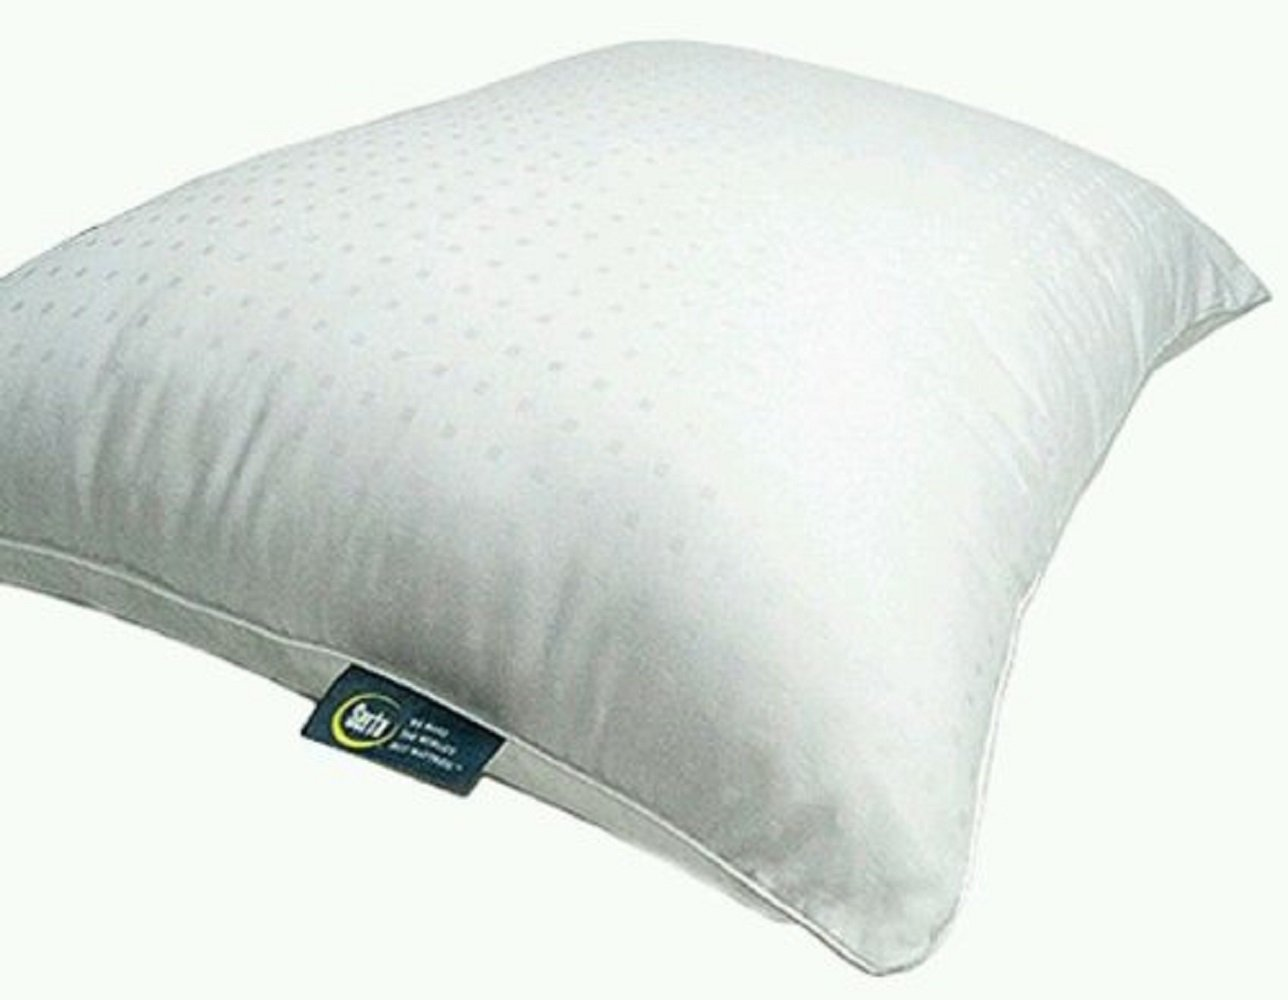 pur pillow home sleep well cool dream product gel